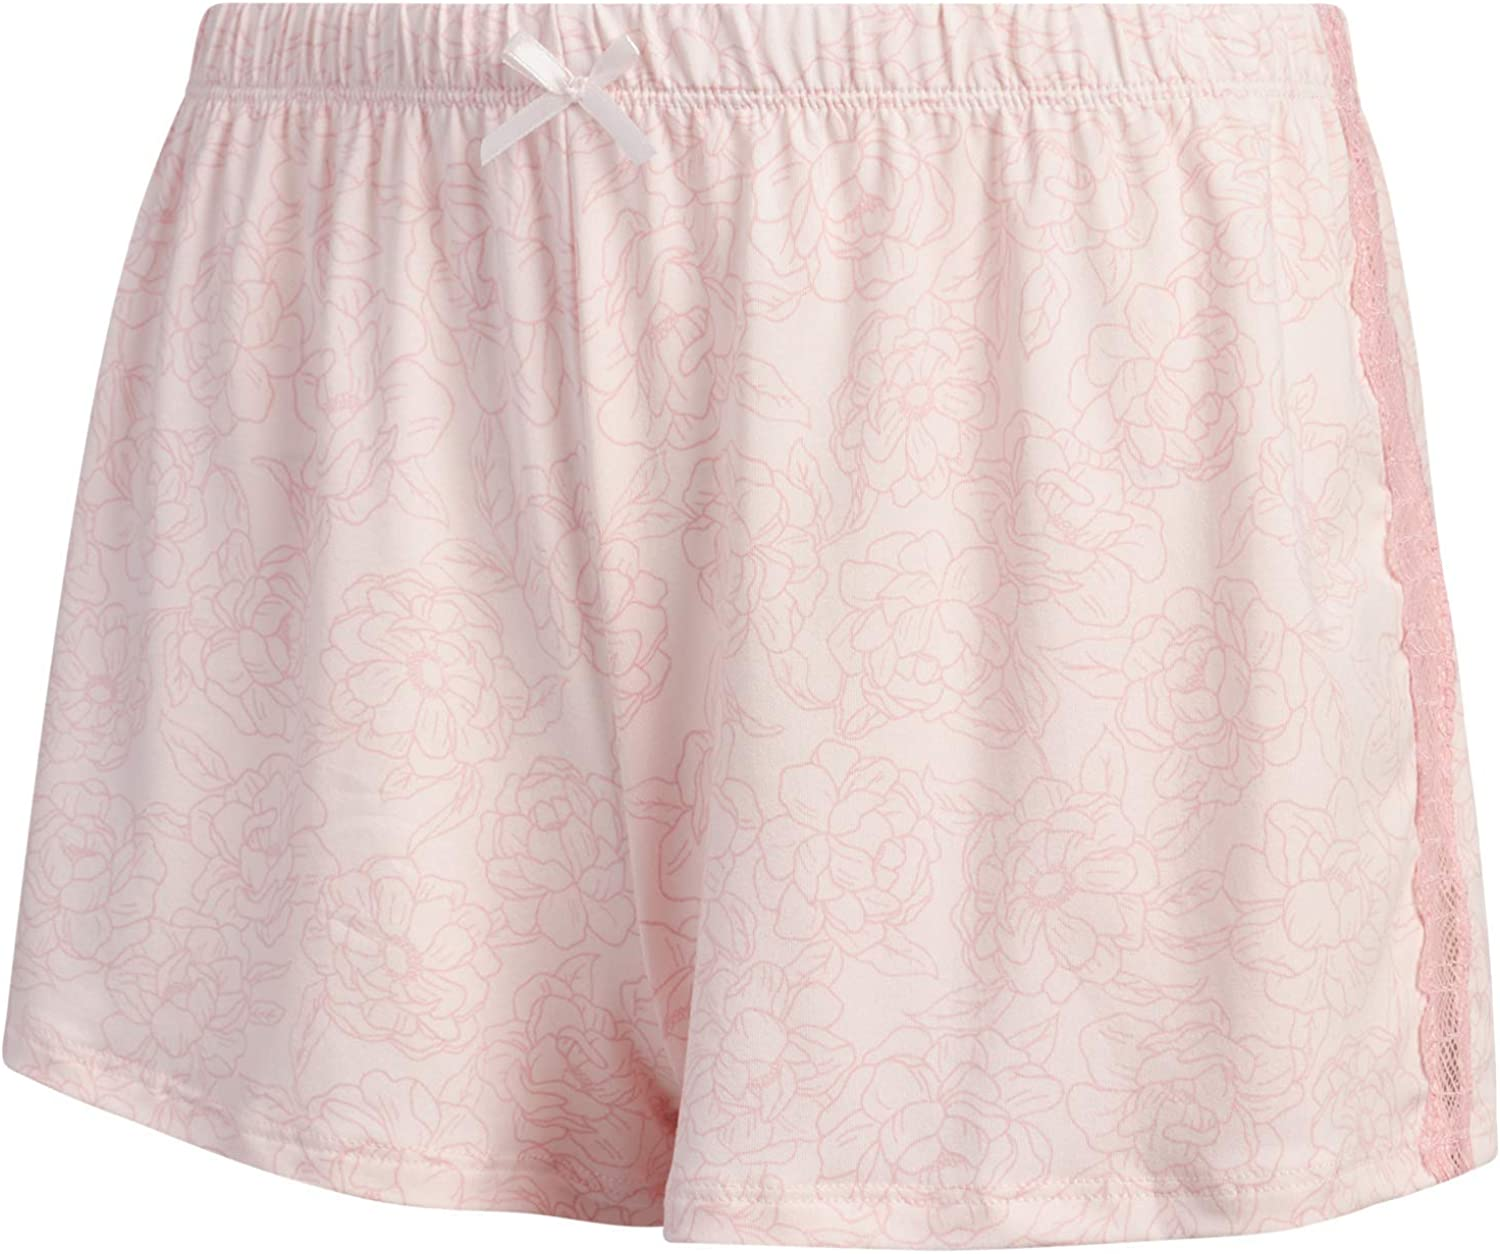 Marilyn Monroe Women's Sleepwear - 2-Piece Micro Shorts and Cami with Lace Trim Pajama Short Set